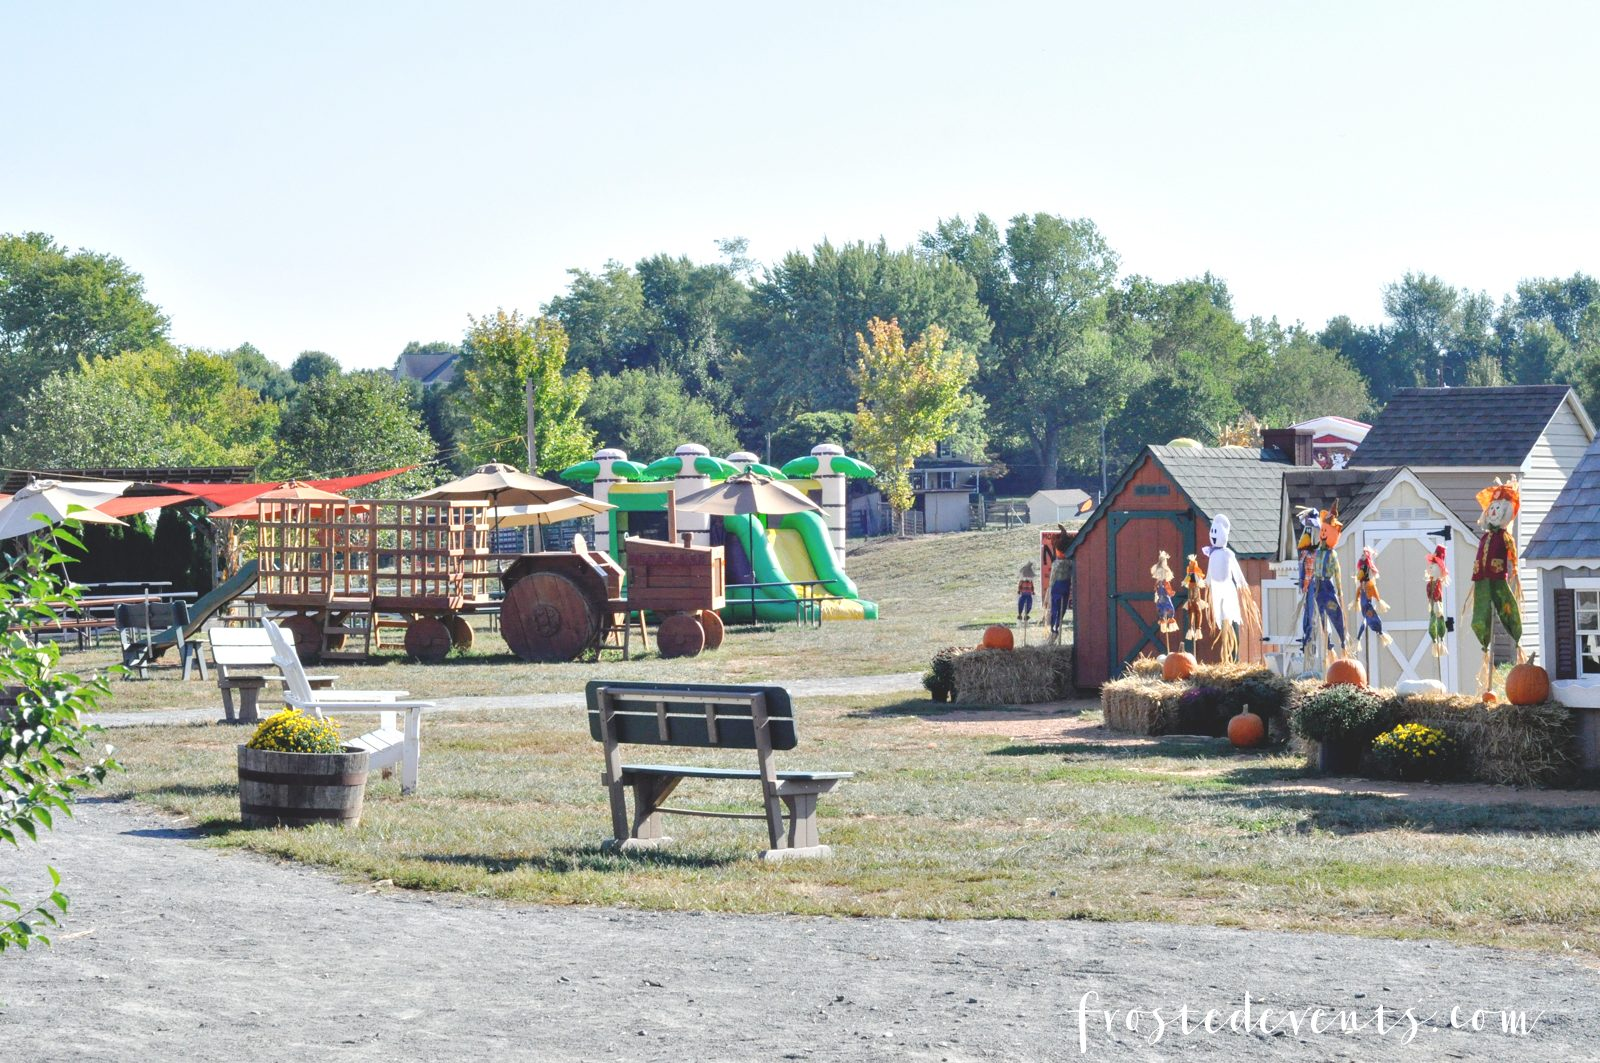 Leesburg Animal Park Pumpkin Village Northern Virginia Things to do with Kids via mom blogger Misty Nelson @frostedevents VA DC MD moms